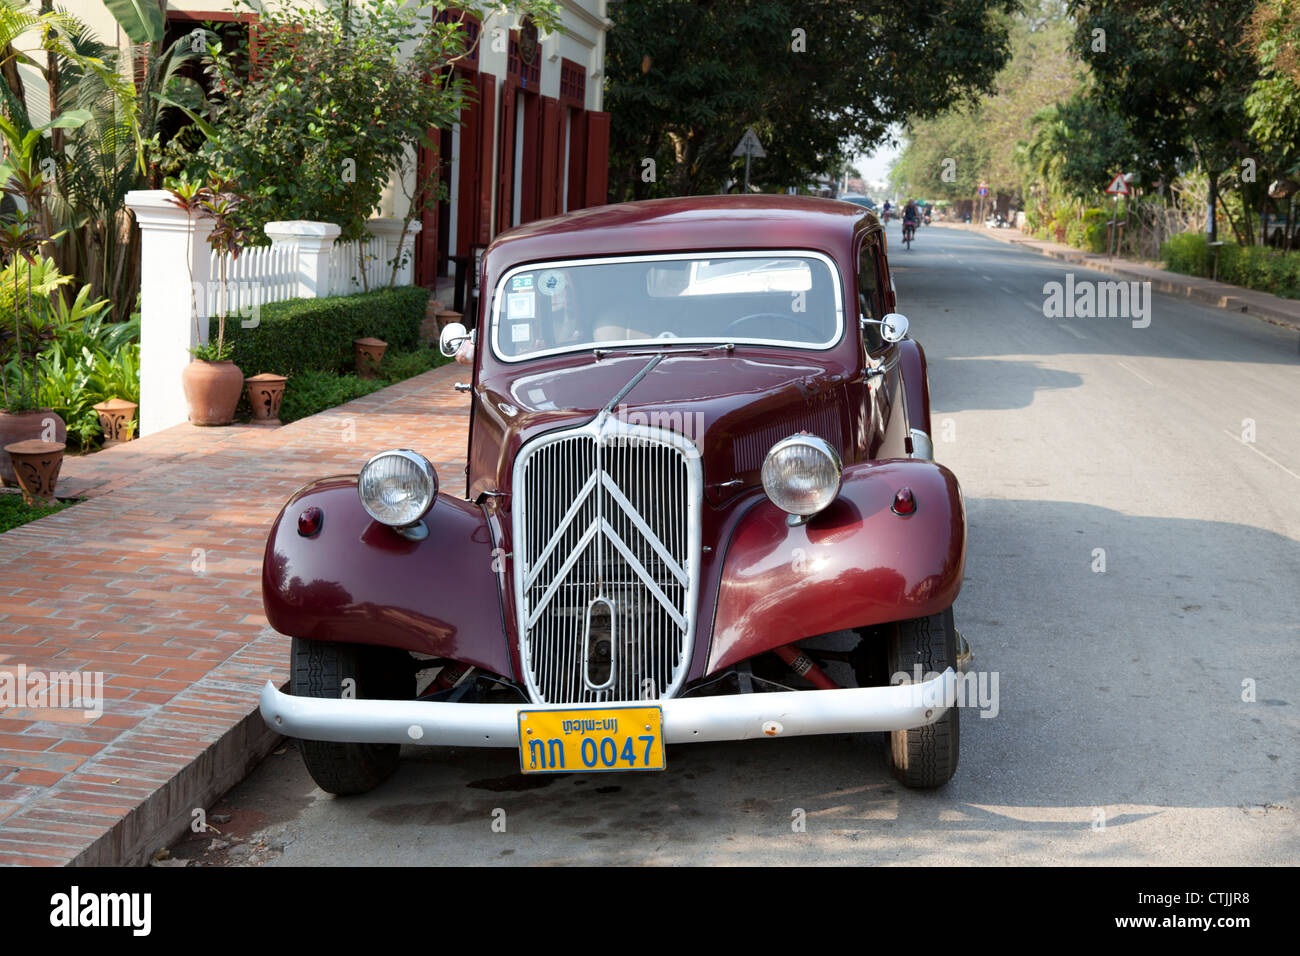 An eccentric old dark red Citroen car with front-wheel drive, in Luang Prabang (Laos). Voiture Citroën traction - Stock Image